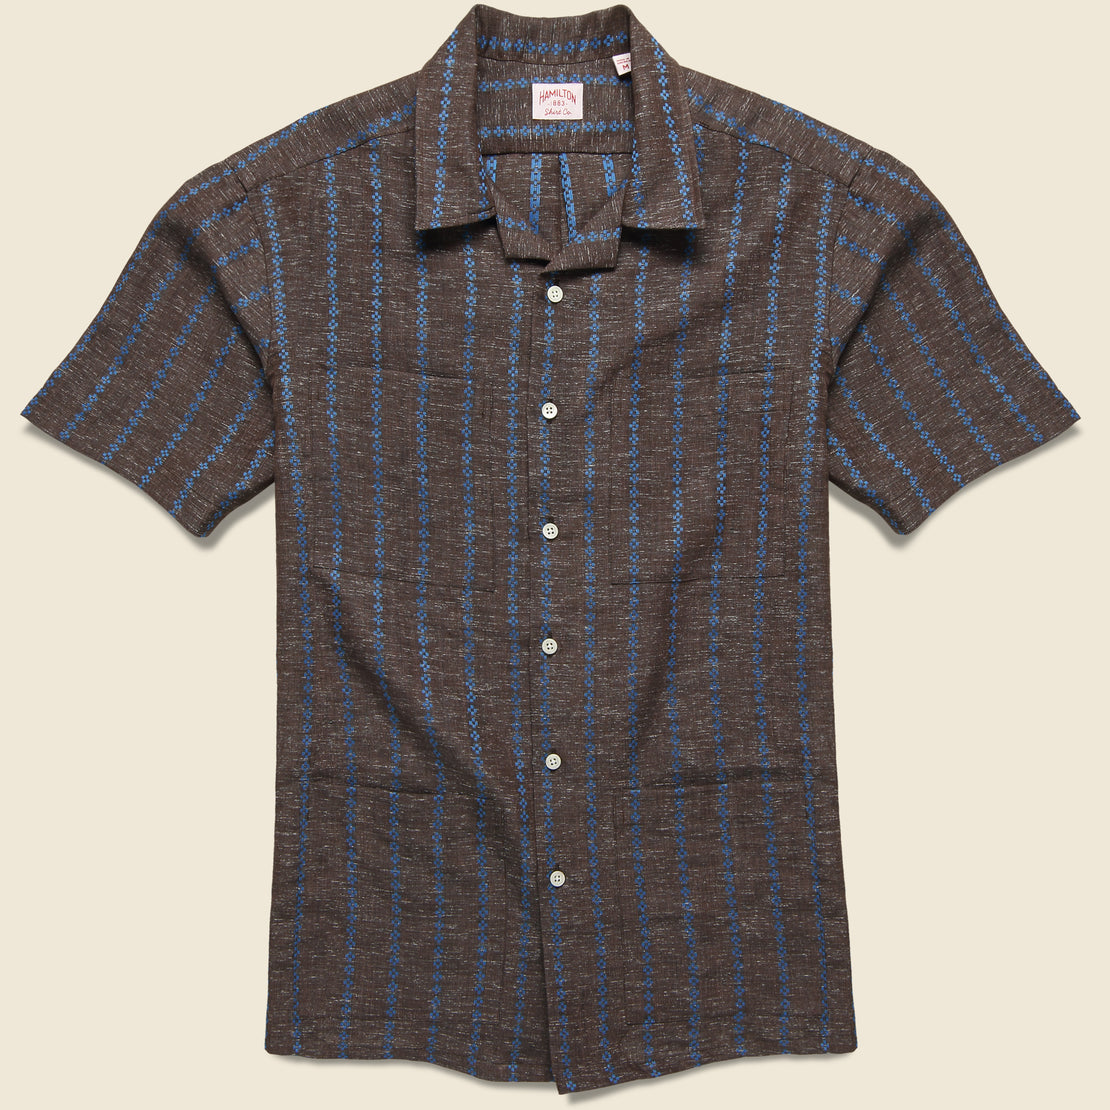 Hamilton Shirt Co. Embroidered Stripe Guayabera Shirt - Brown/Blue